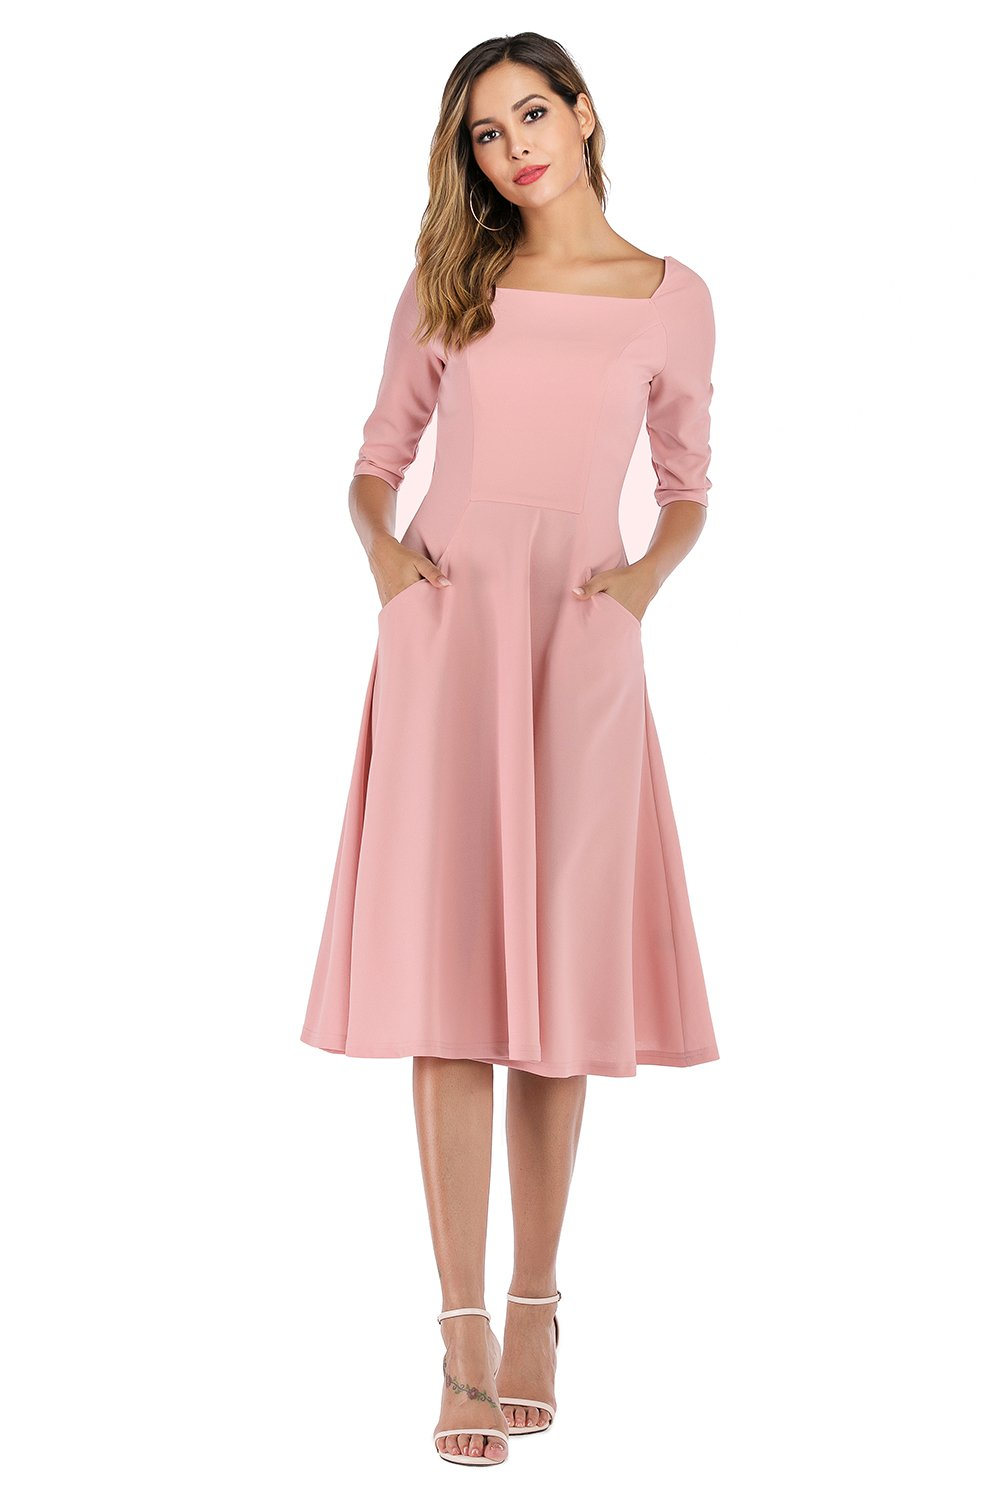 Pink Dress with Pockets